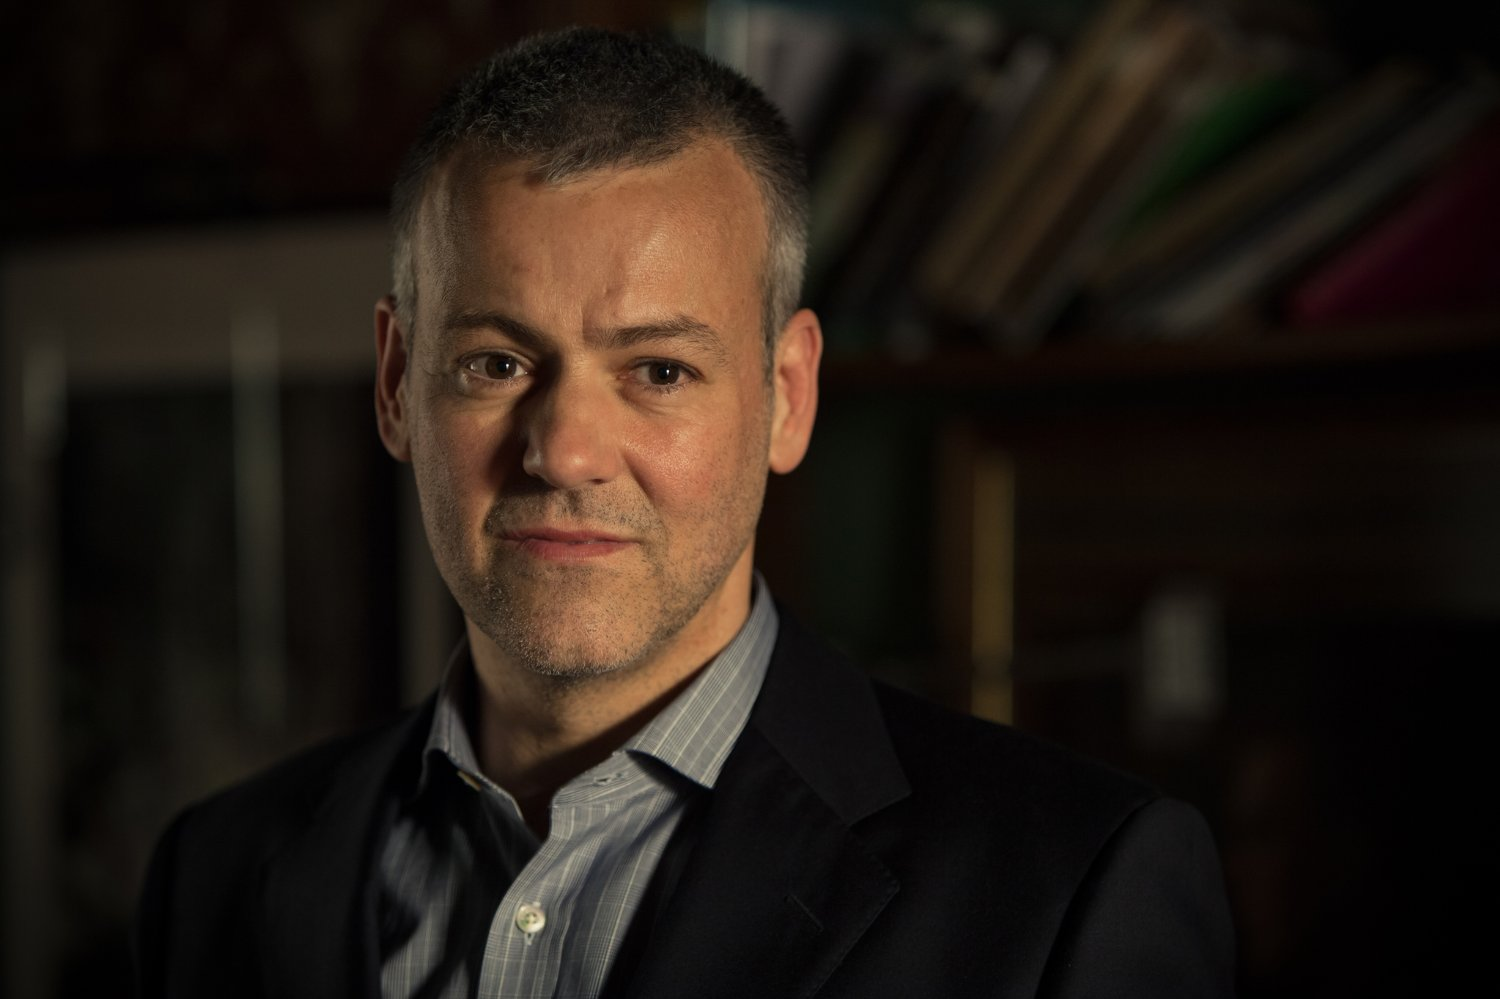 Rupert Graves (born 1963) nude (48 photos), Sexy, Cleavage, Feet, braless 2018